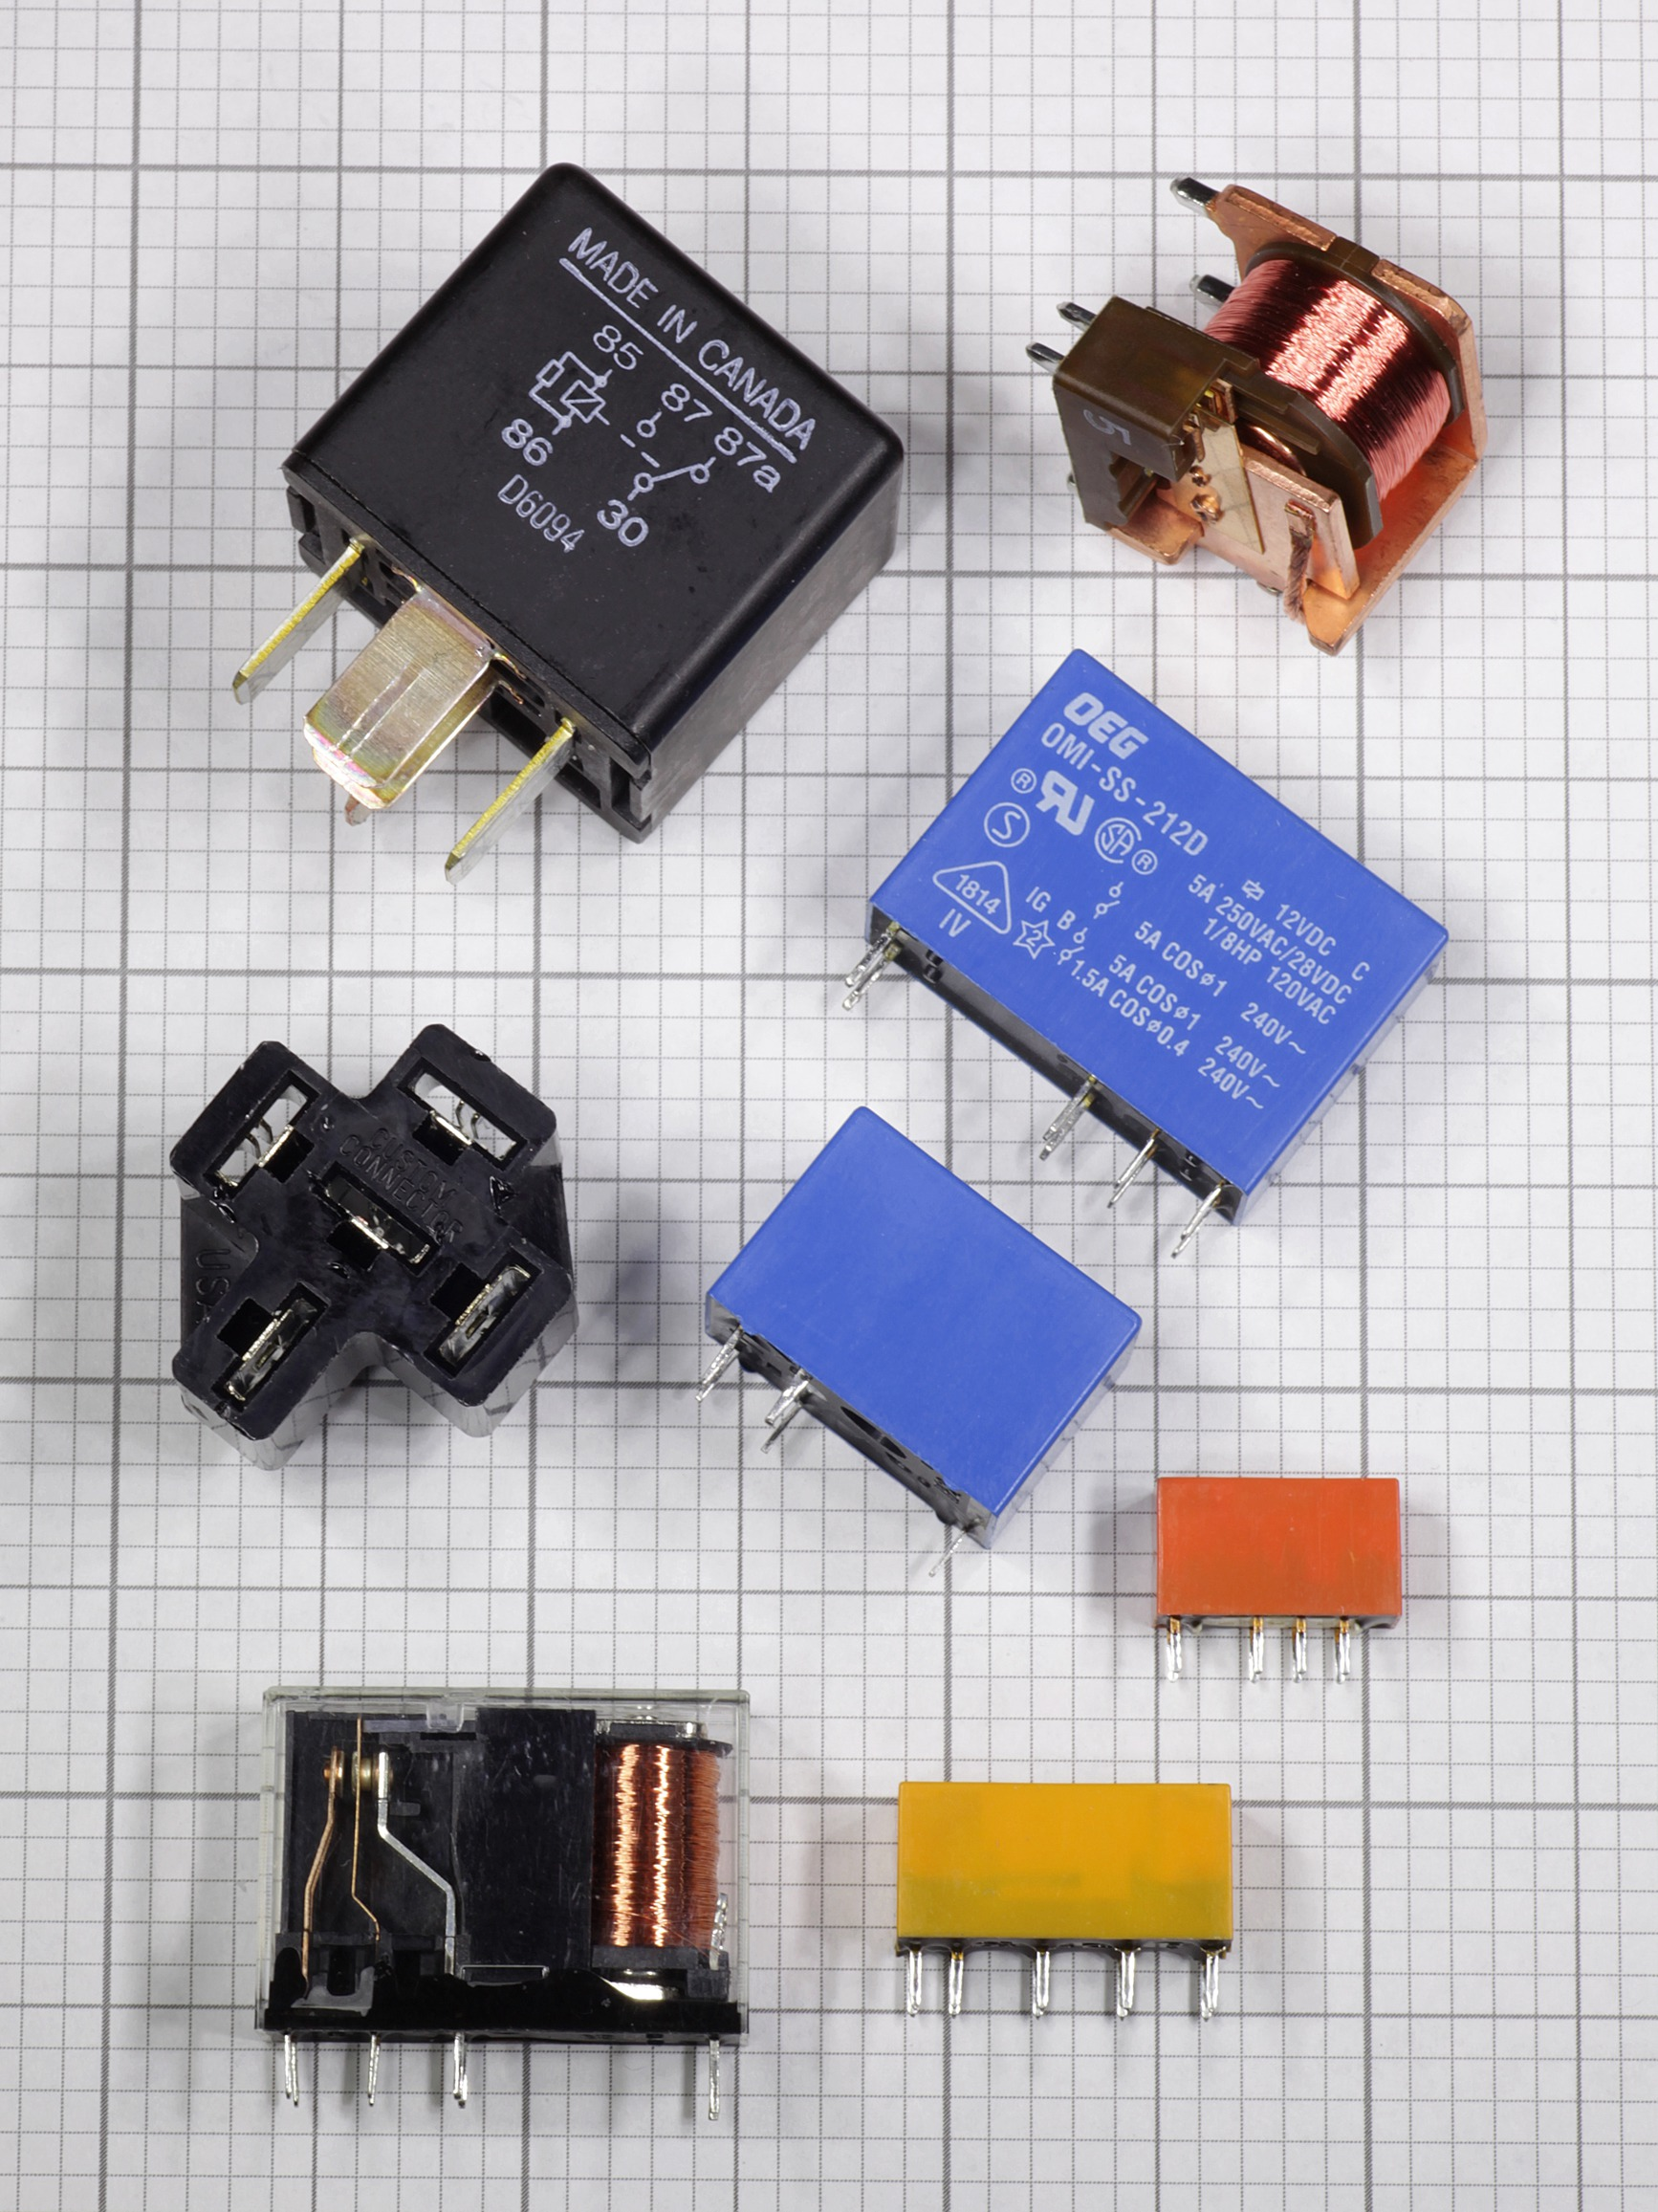 Component Of The Month Relays Make Basic Functions A Relay